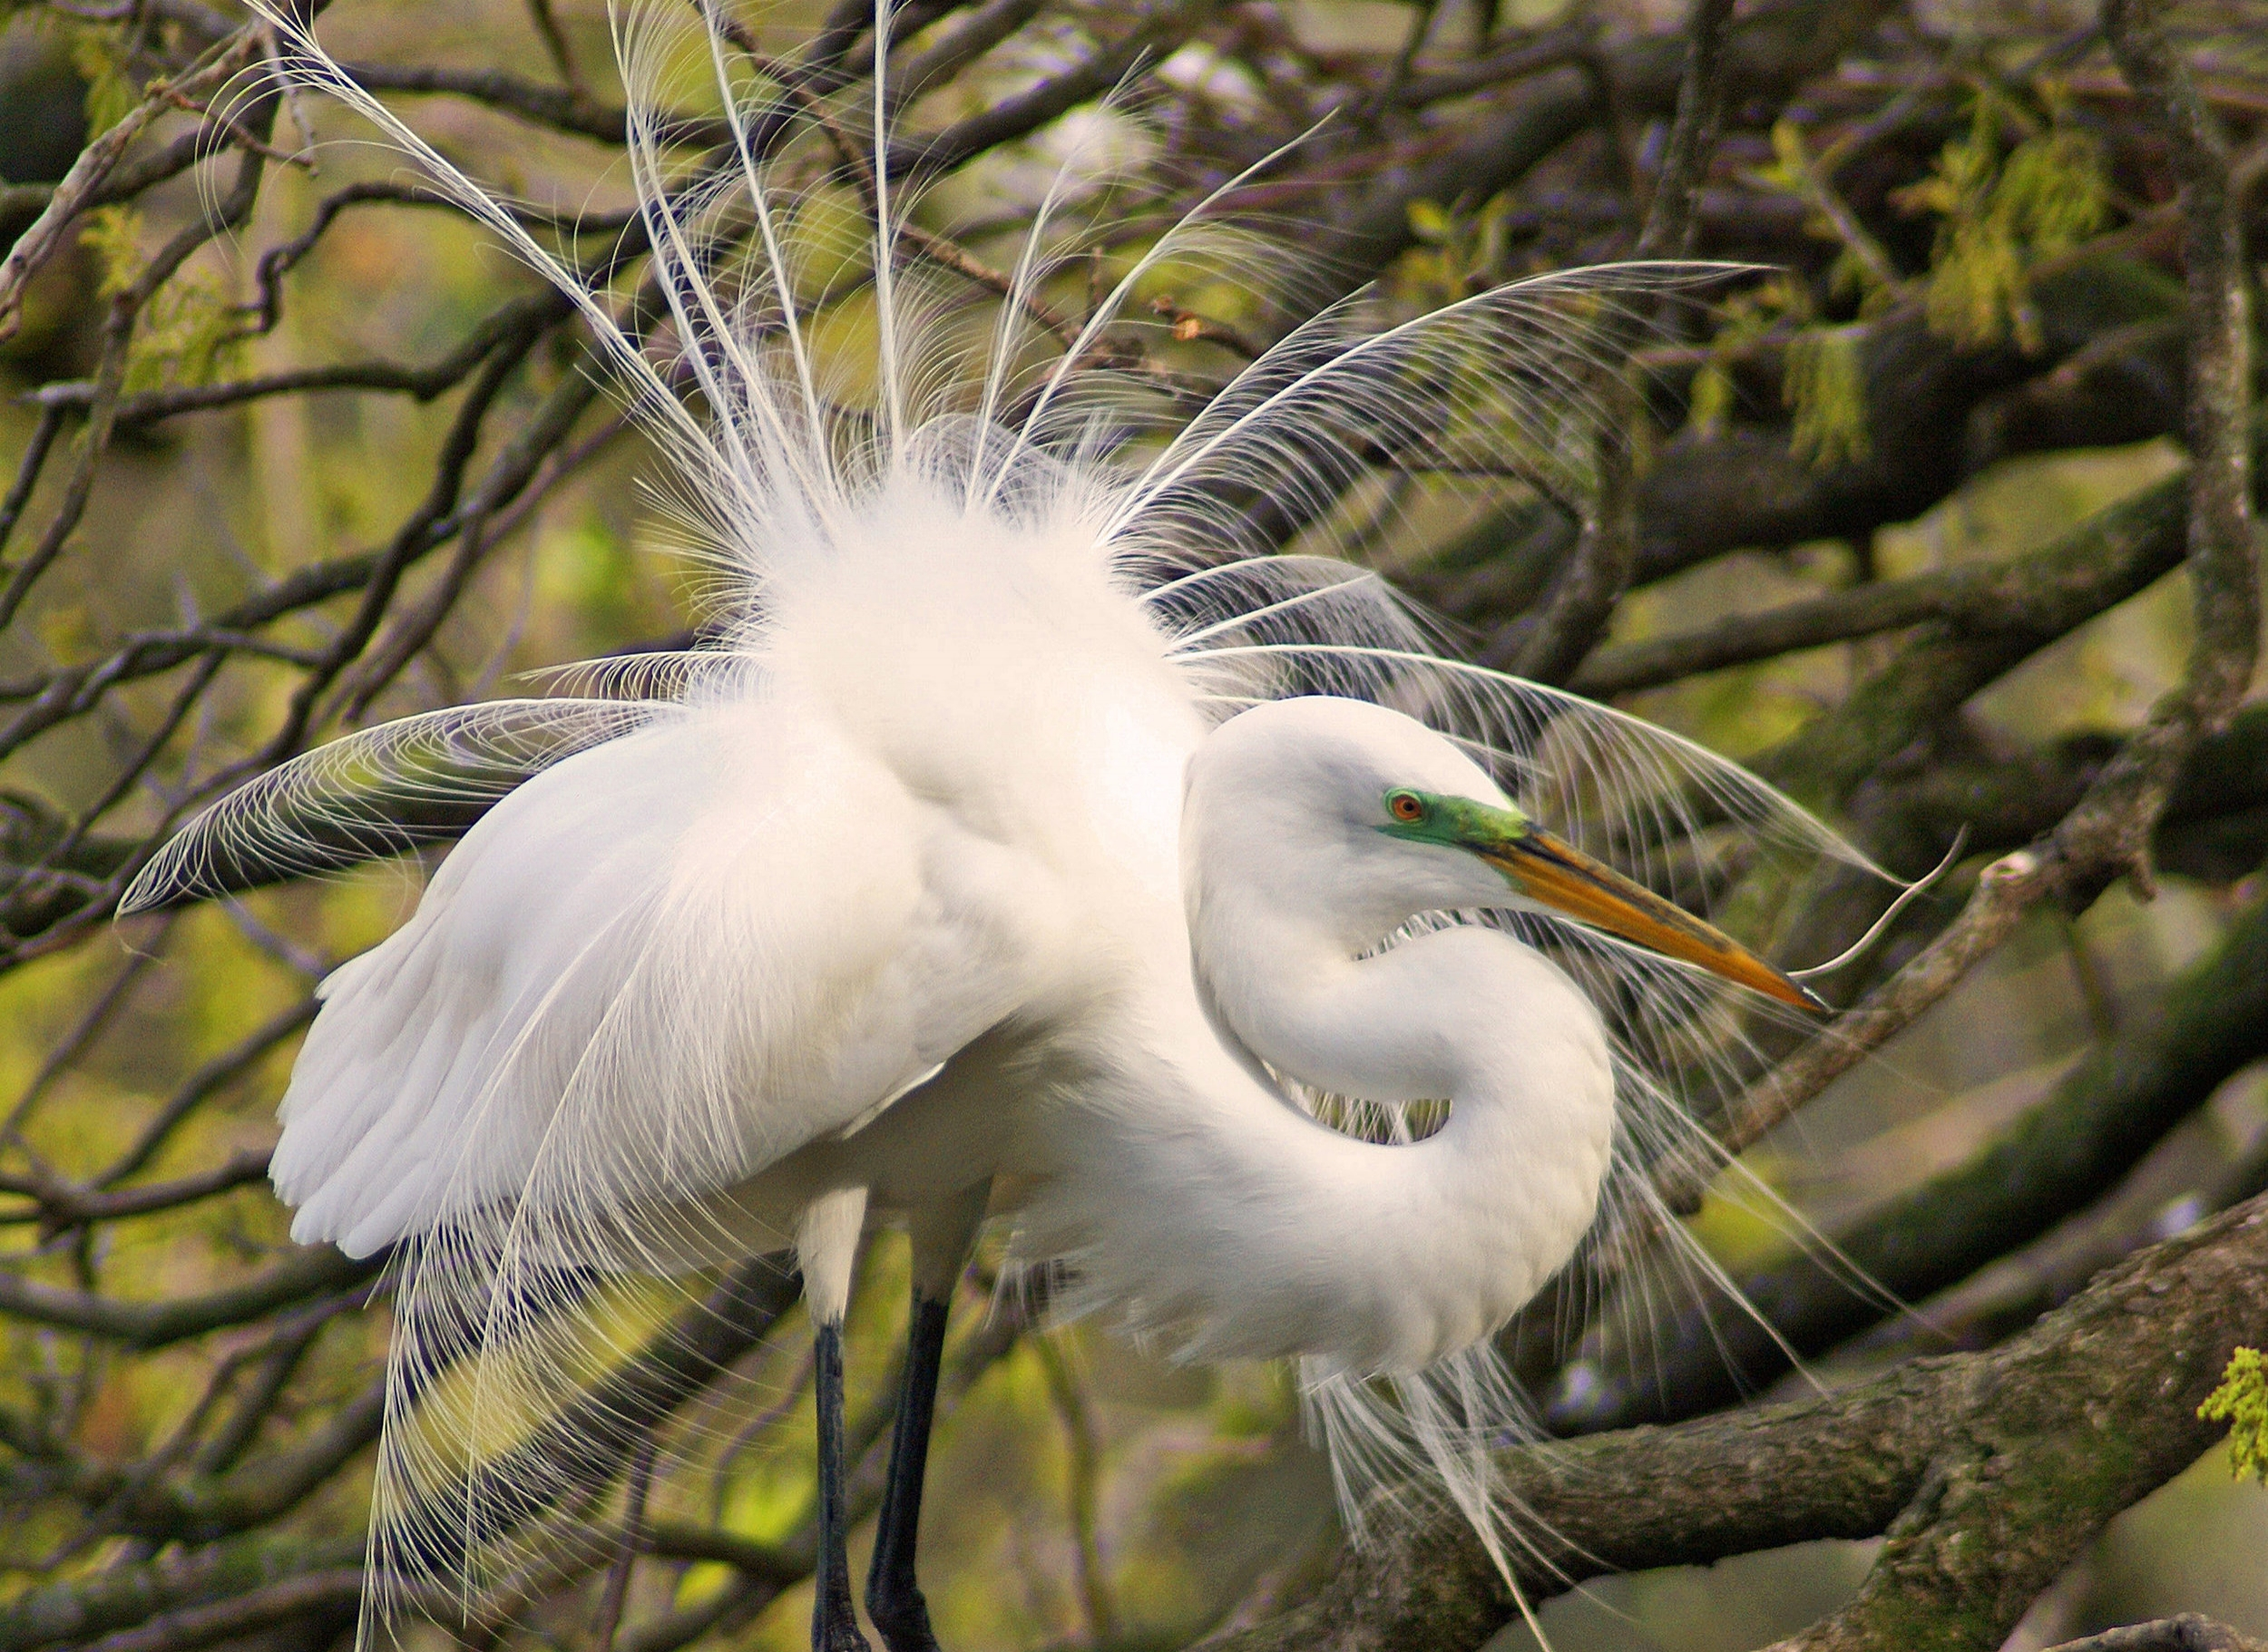 Robert R. Mindick - Great Egret